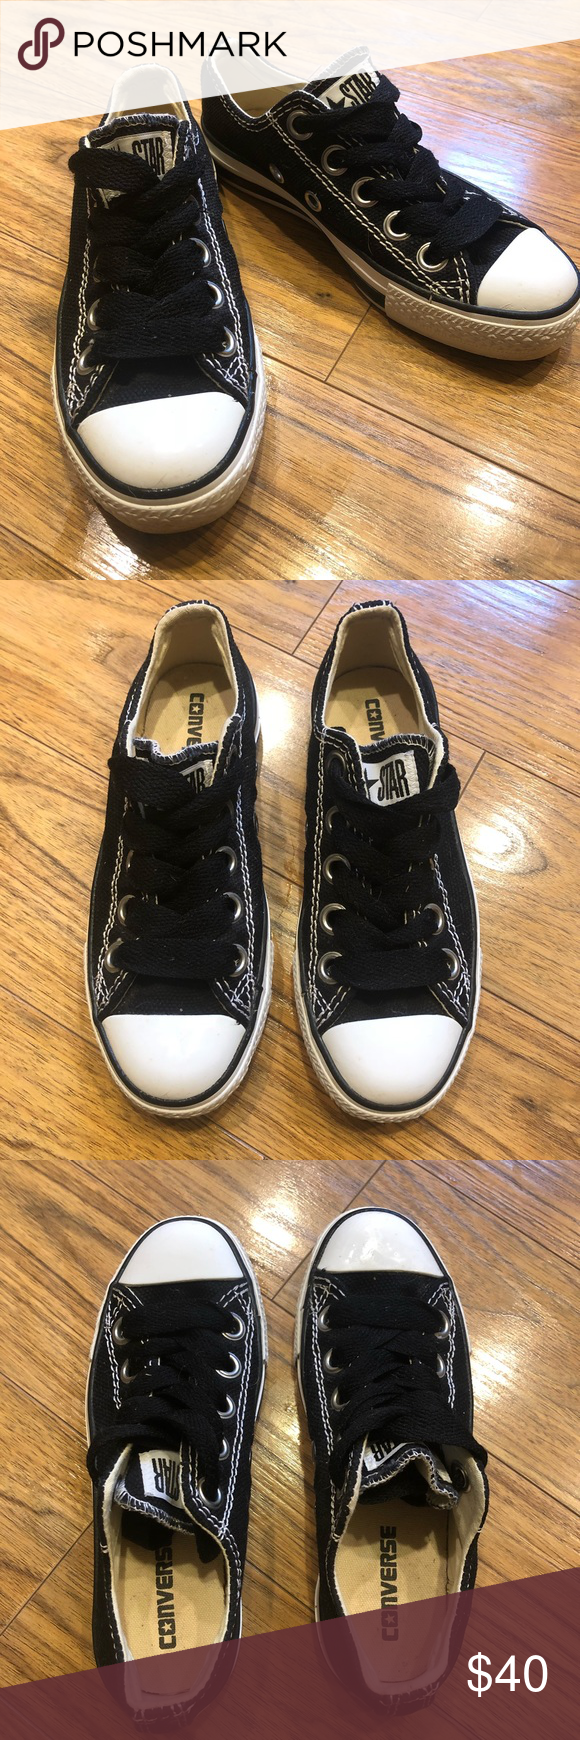 da98506a7140a9 Converse Men s size 4  Women s 6 These Converse have never been worn! Super  cute for fall. ♢️Men s size 4  women size 6 Converse Shoes Athletic Shoes